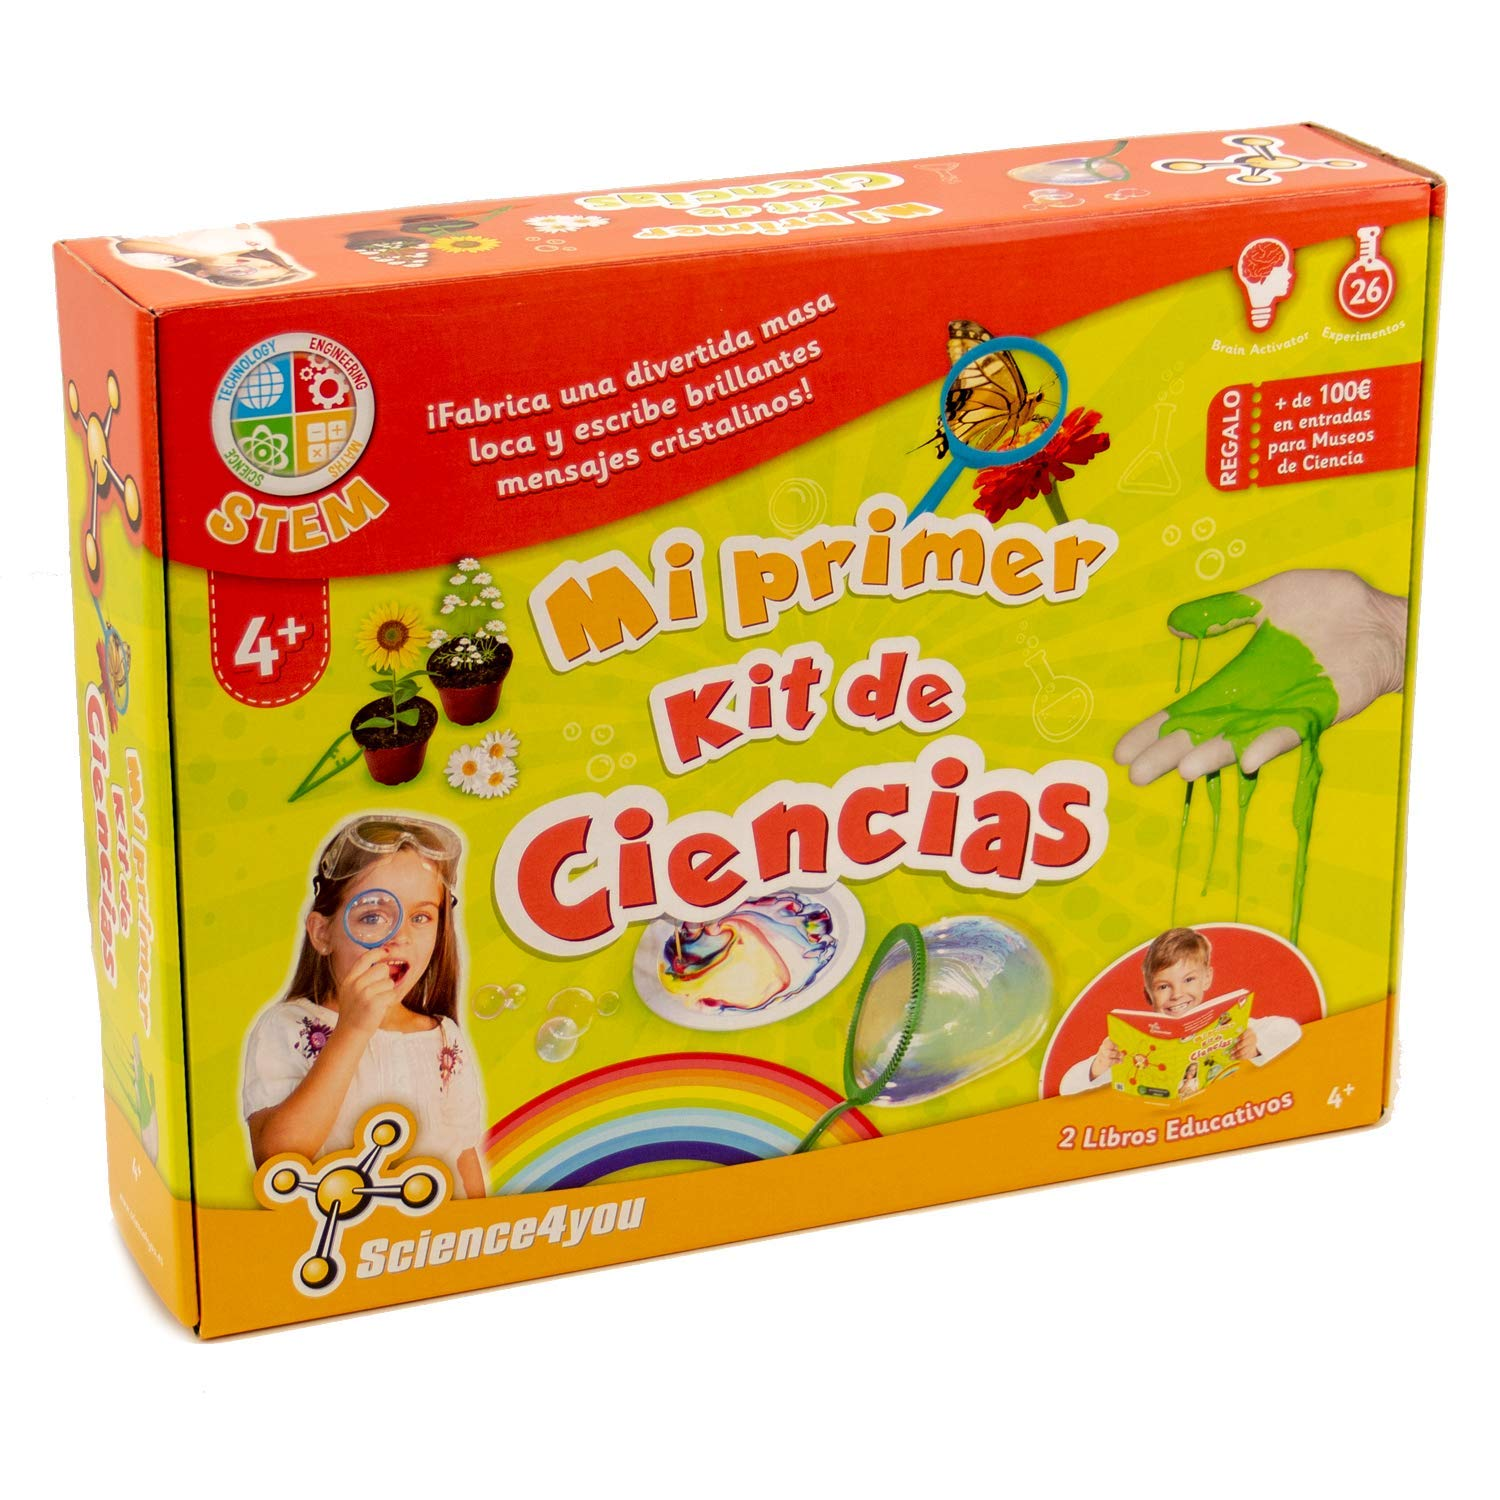 Science4you - My First Science Kit Toy Cientifico from 4 Years